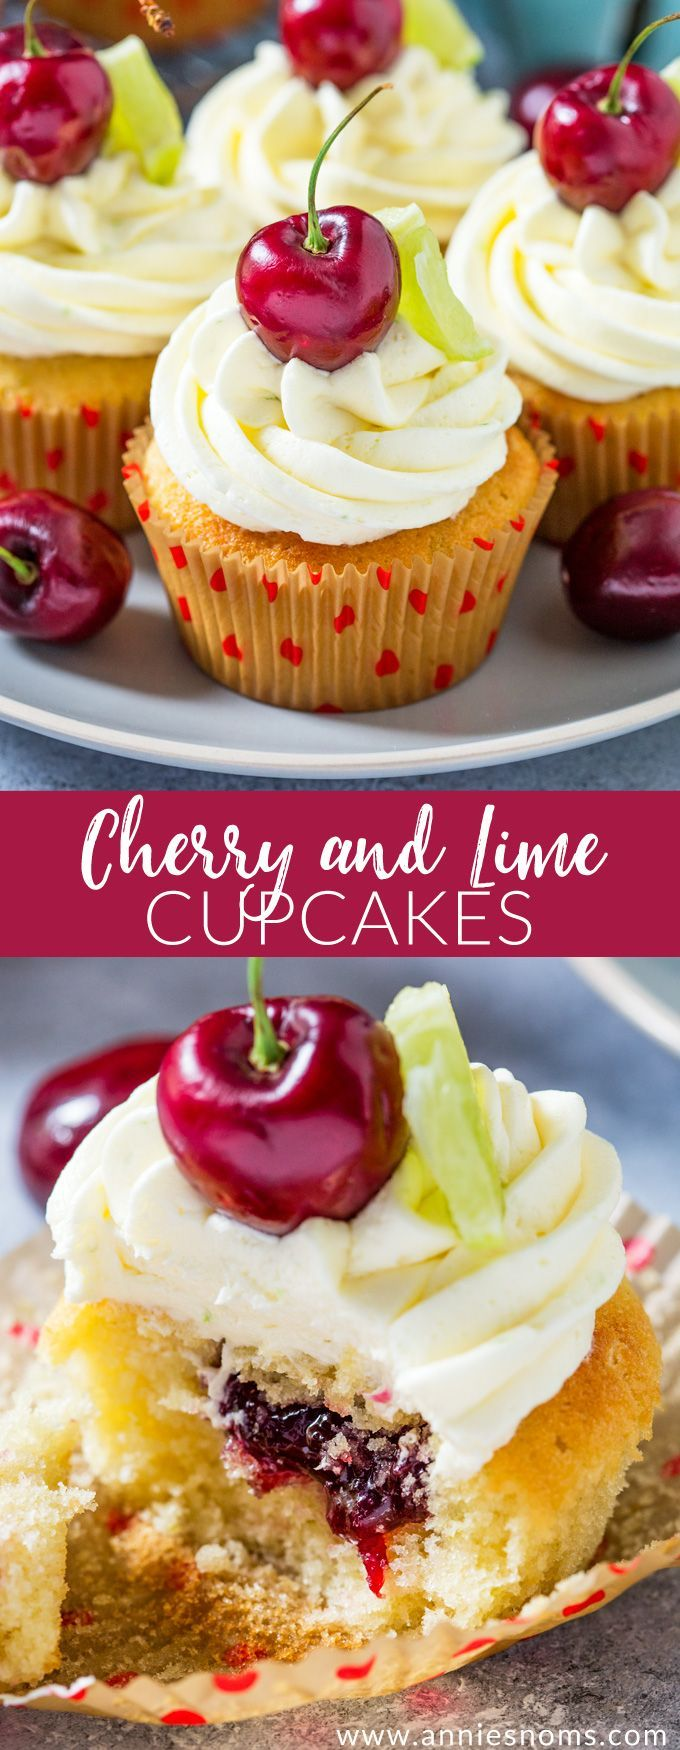 These Cherry and Lime Cupcakes are filled with homemade jam & lime zest. Topped with light, fluffy frosting, they are the perfect balance of tart and sweet.